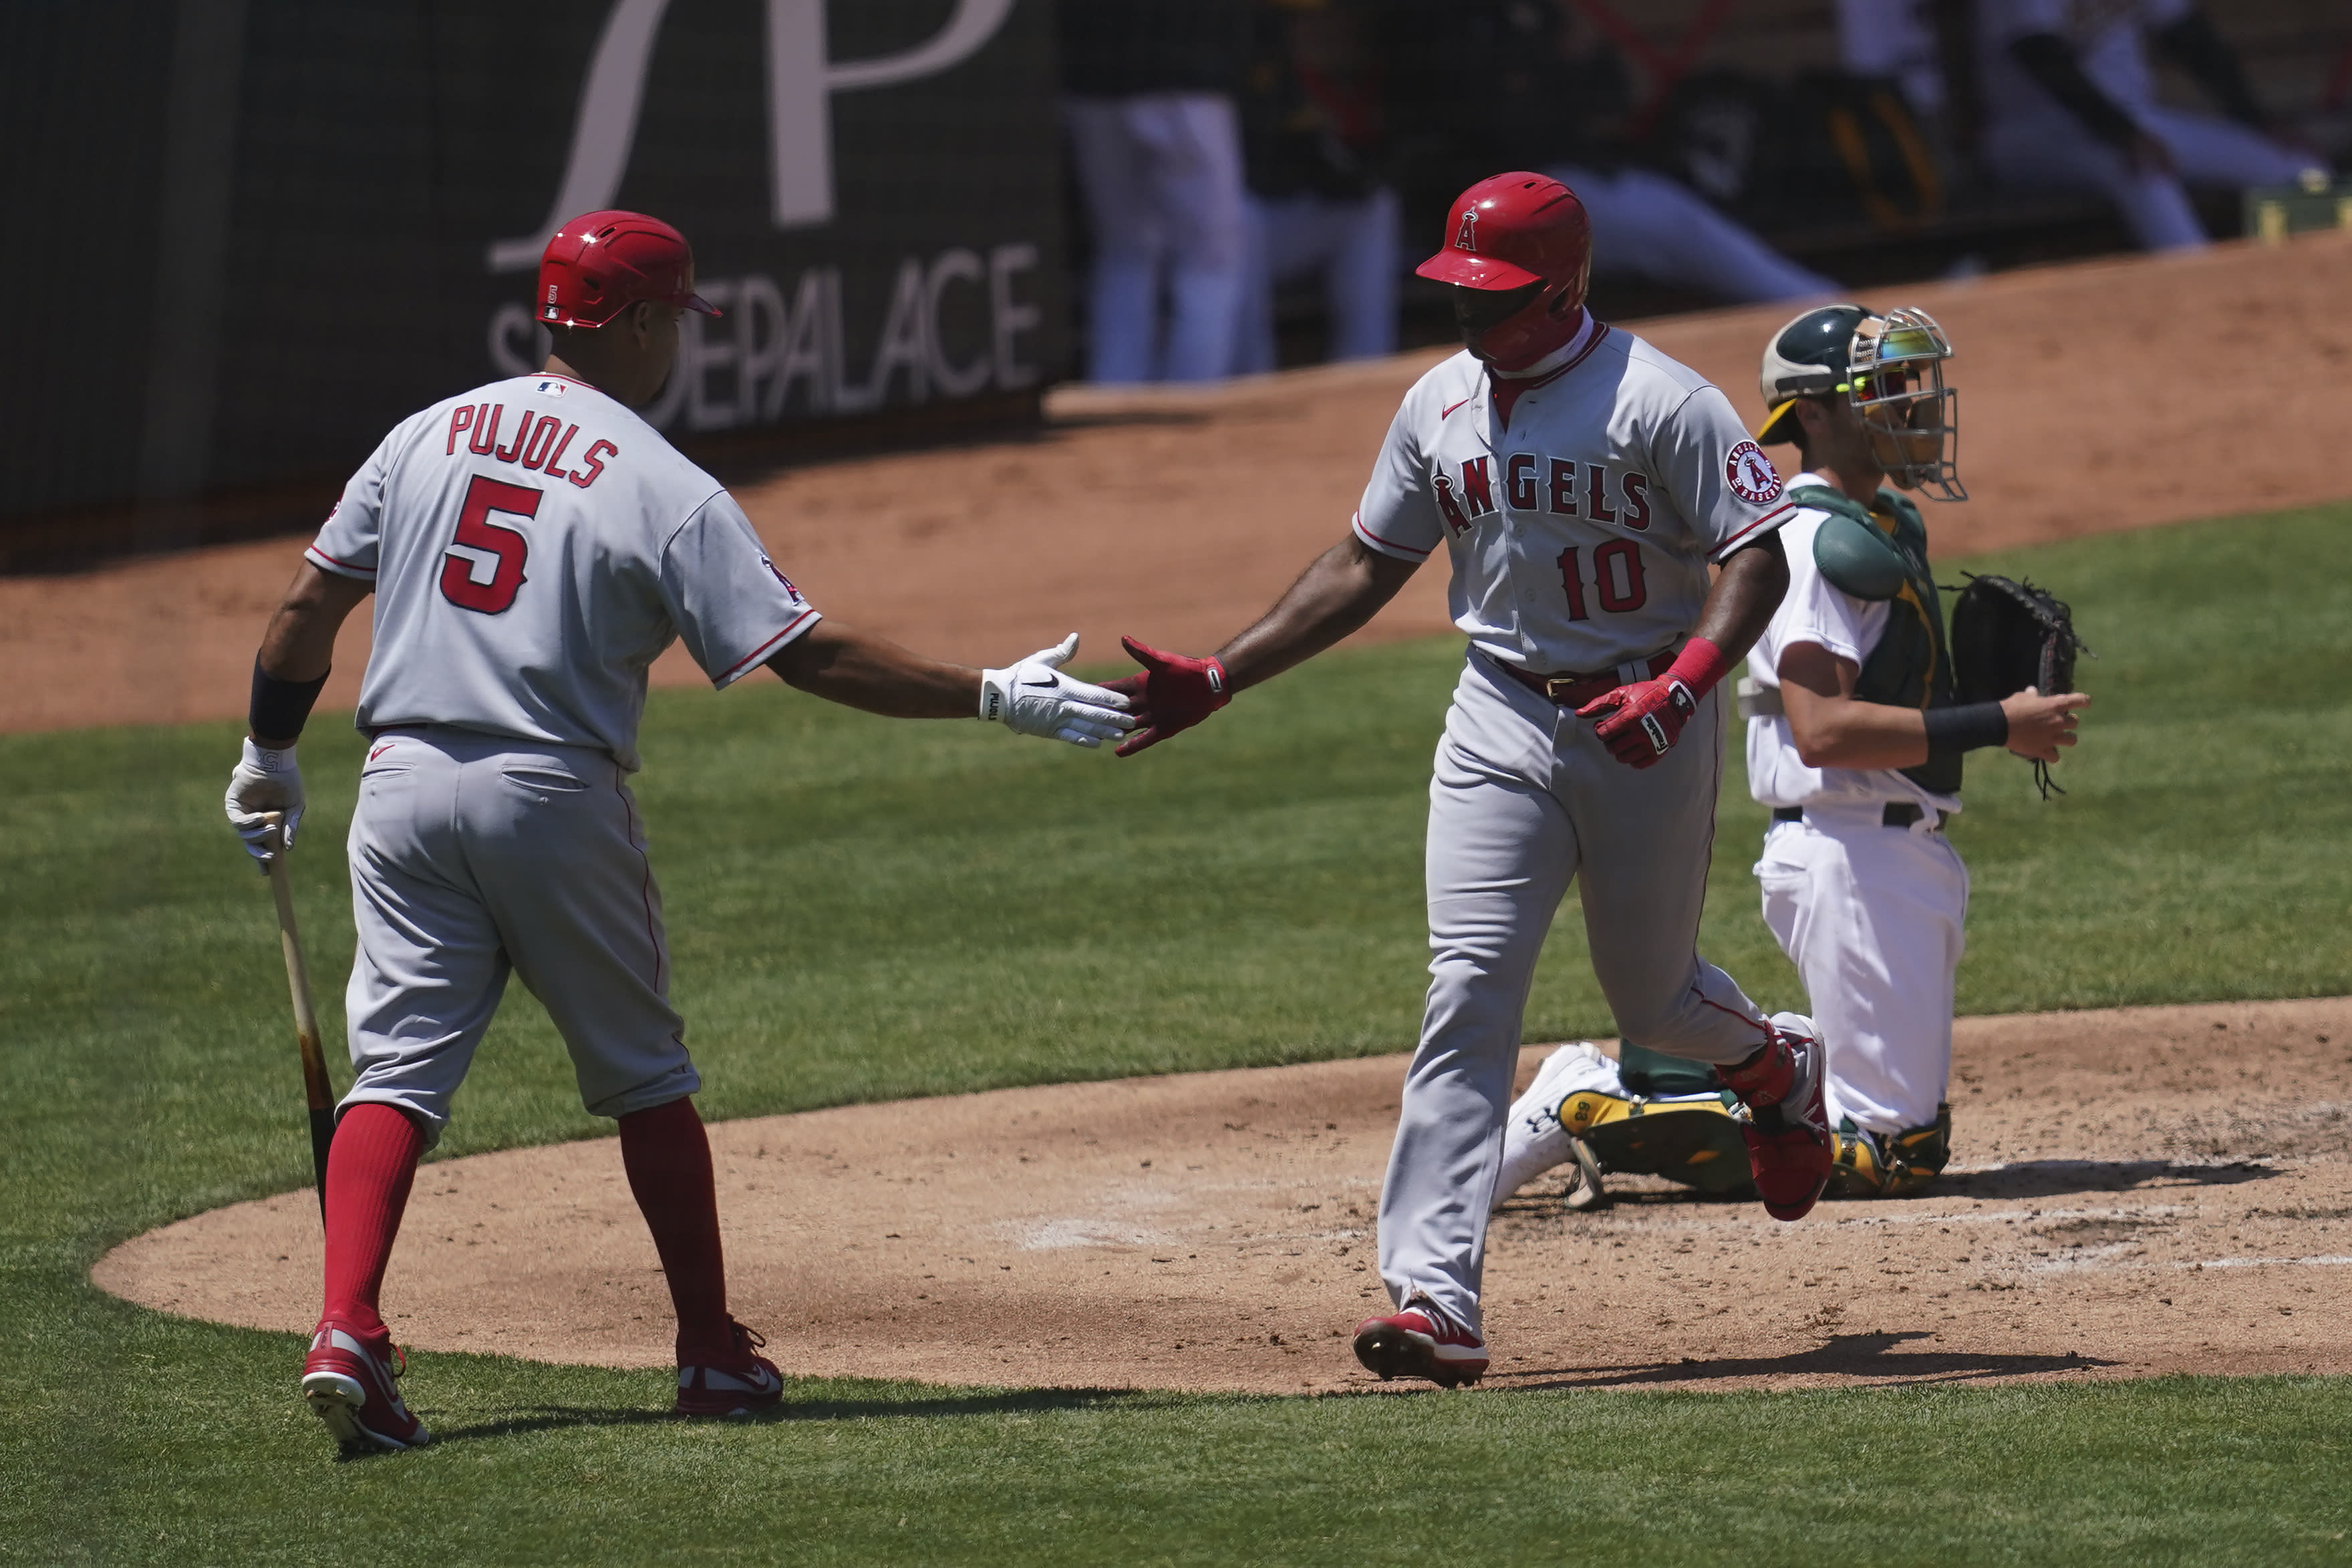 Los Angeles Angels' Justin Upton (10) is congratulated by Albert Pujols after hitting a solo home run against the Oakland Athletics during the fourth inning of a baseball game in Oakland, Calif., Saturday, July 25, 2020. Athletics catcher Austin Allen, right, looks on. (AP Photo/Jeff Chiu)